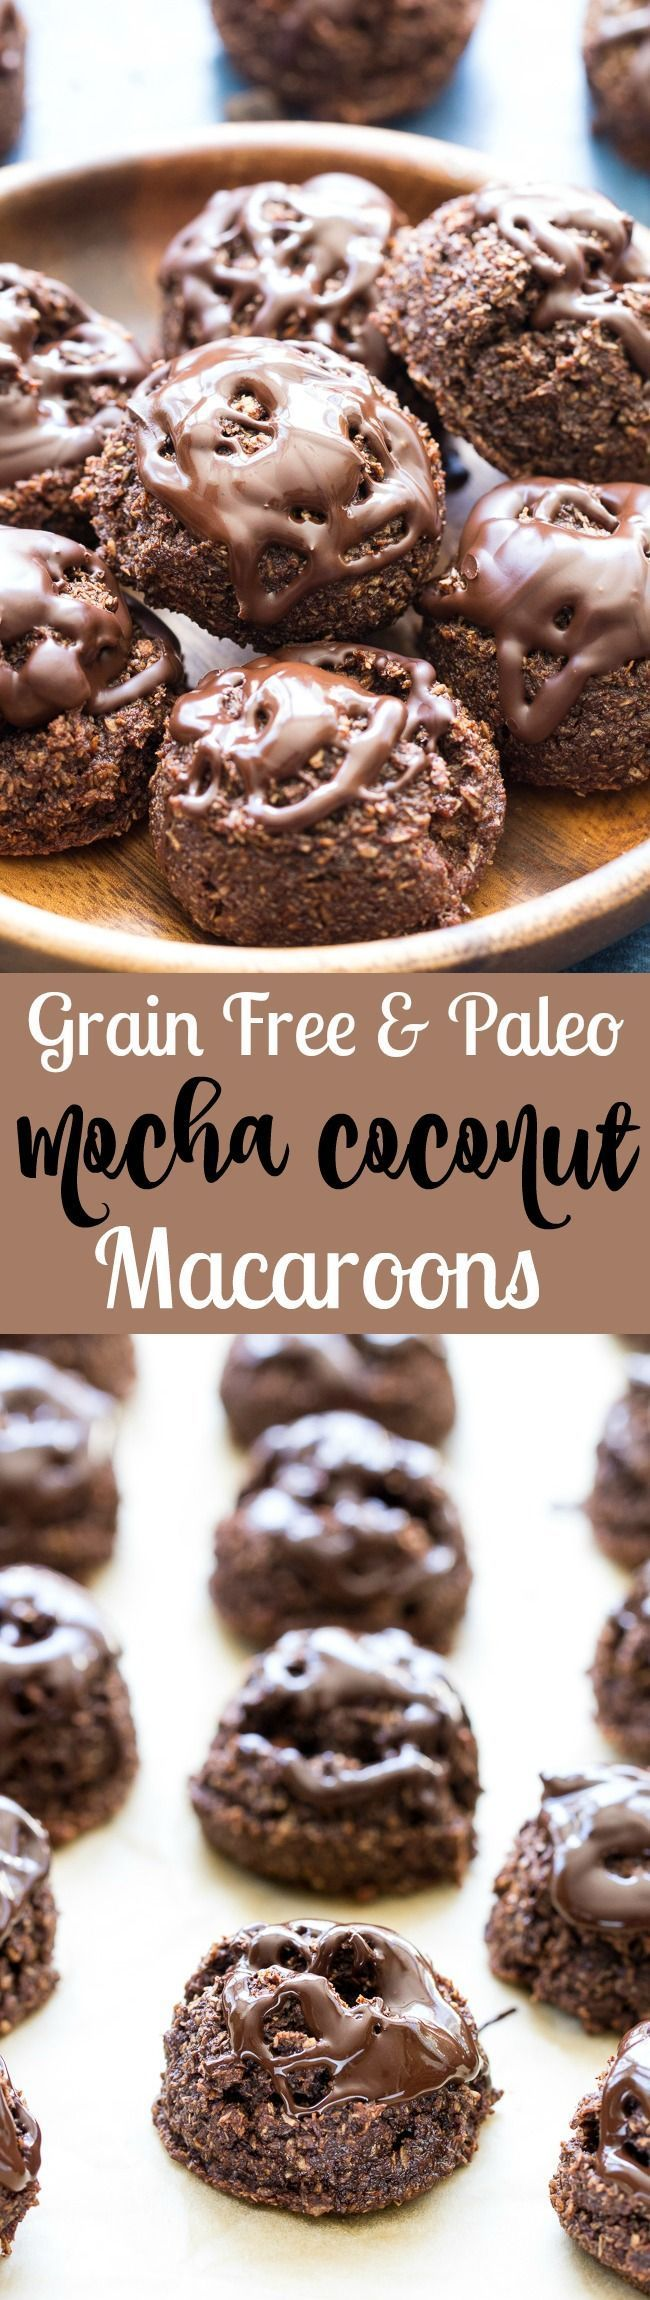 Mocha Coconut Macaroons These easy to make Paleo Mocha Coconut Macaroons are a deliciously decadent, yet healthy snack or post-workout treat! Made with wholesome ingredients, grain free, dairy free, and refined sugar free.Delicious  Delicious may refer to: